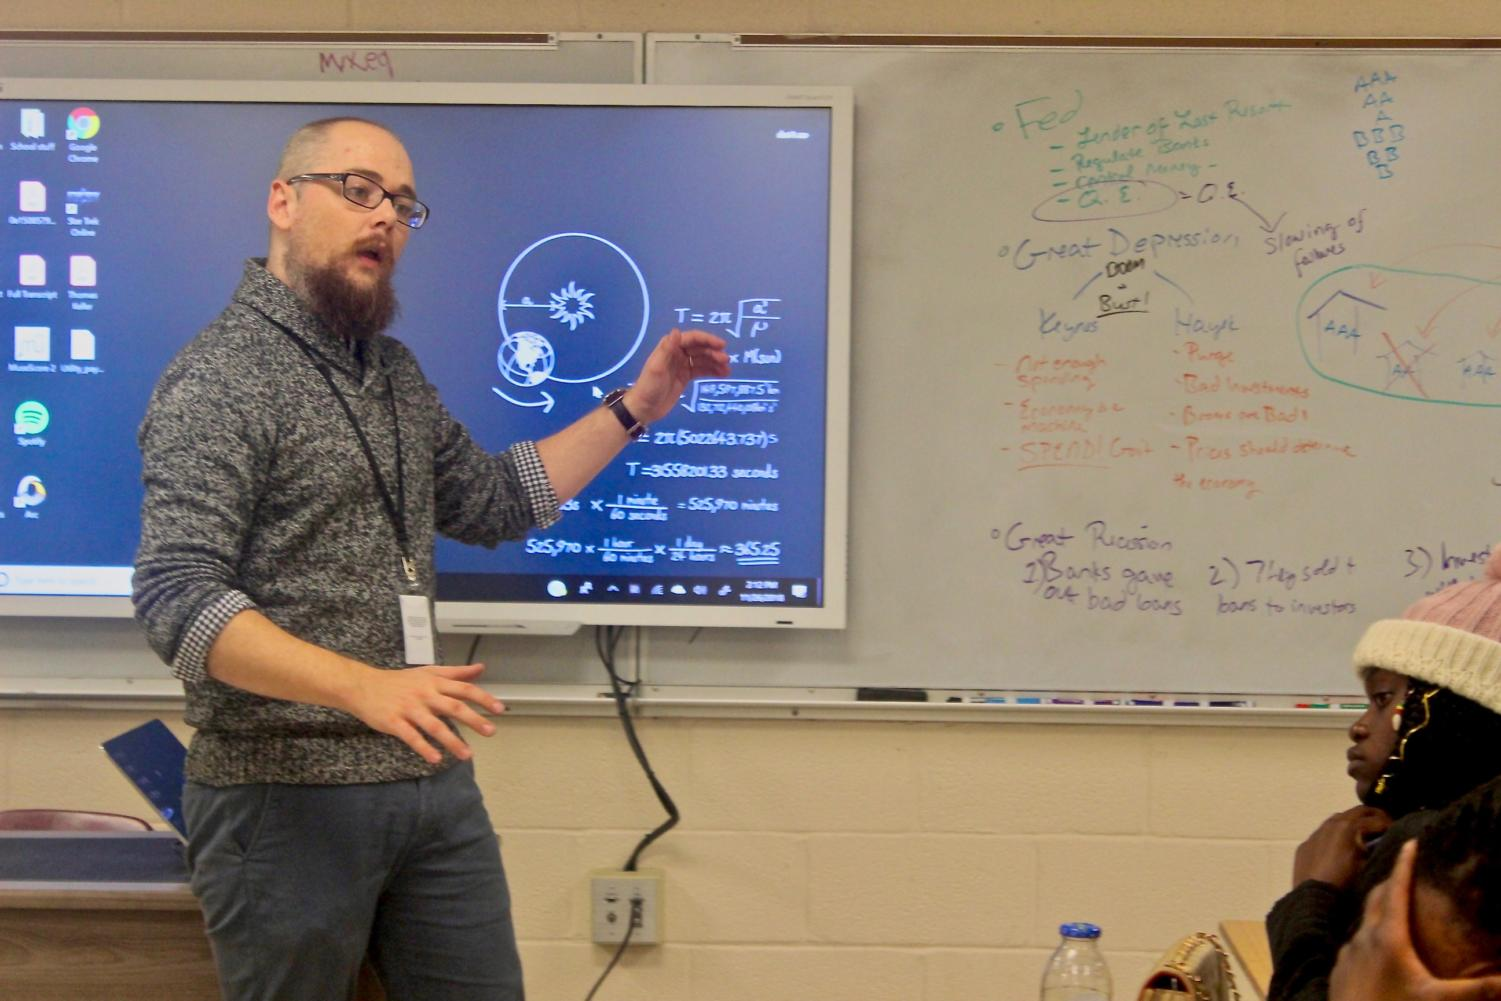 New personal finance teacher, Mr.Trowbridge, enlightens students with real-world skills based on his experiences.